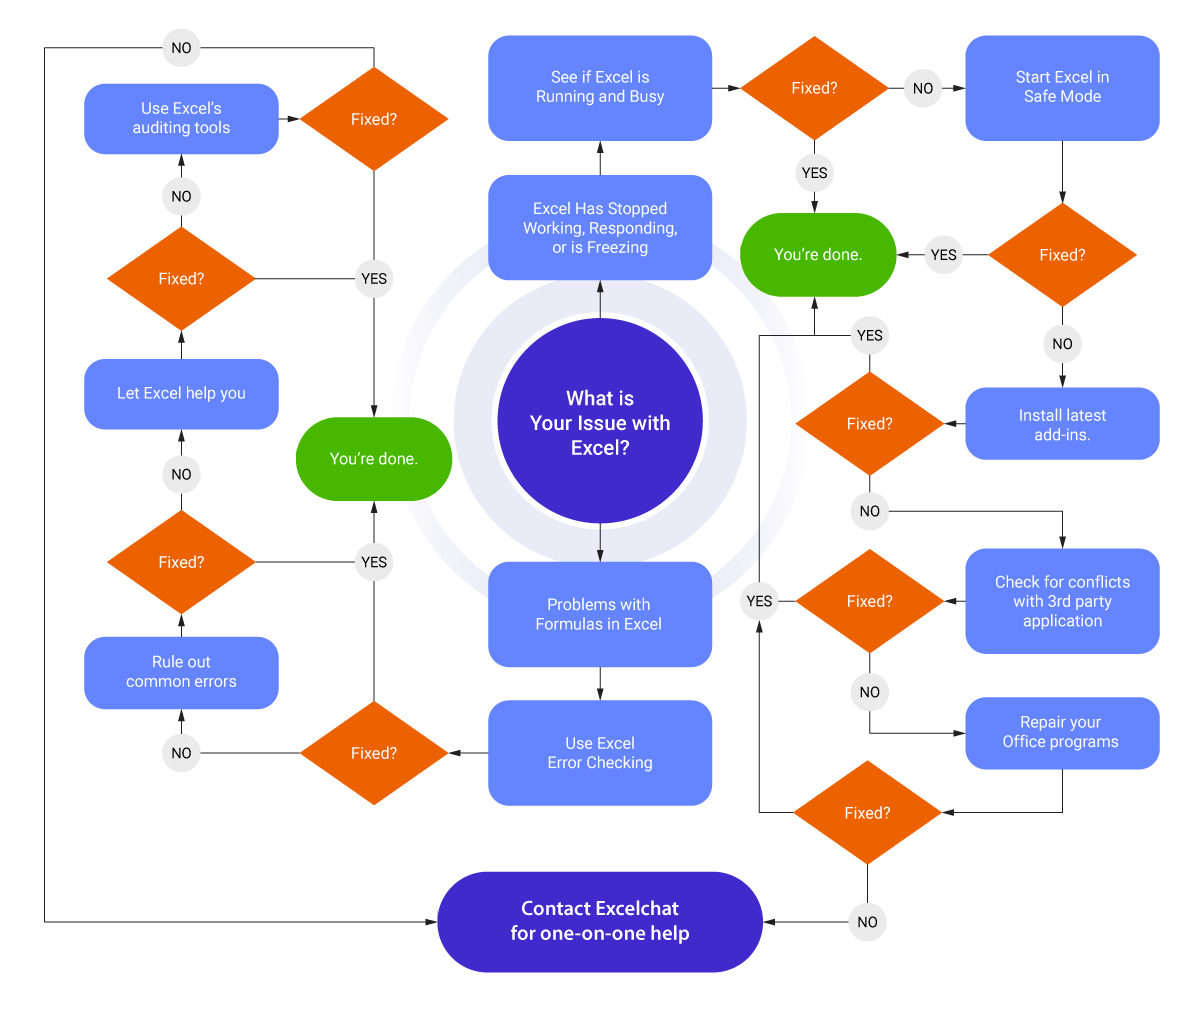 Troubleshooting excel flowchart.